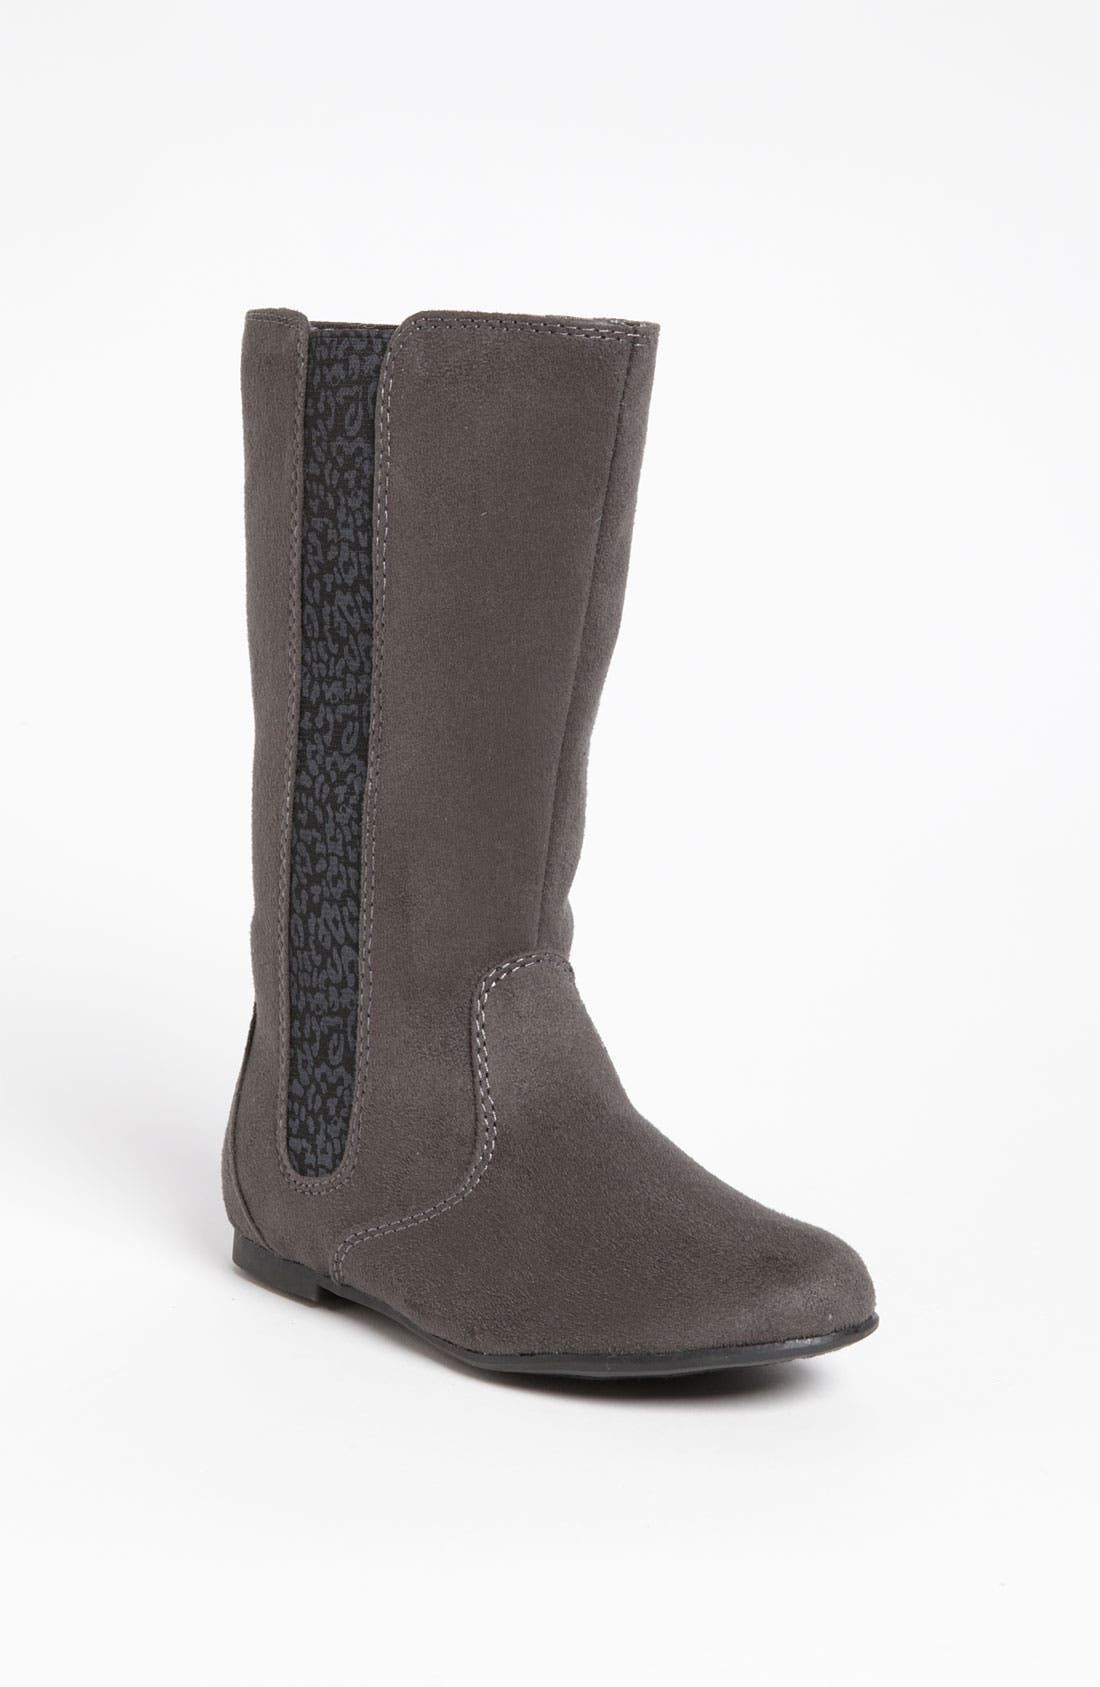 Alternate Image 1 Selected - Jessica Simpson 'Chandra' Bootie (Toddler, Little Kid & Big Kid)